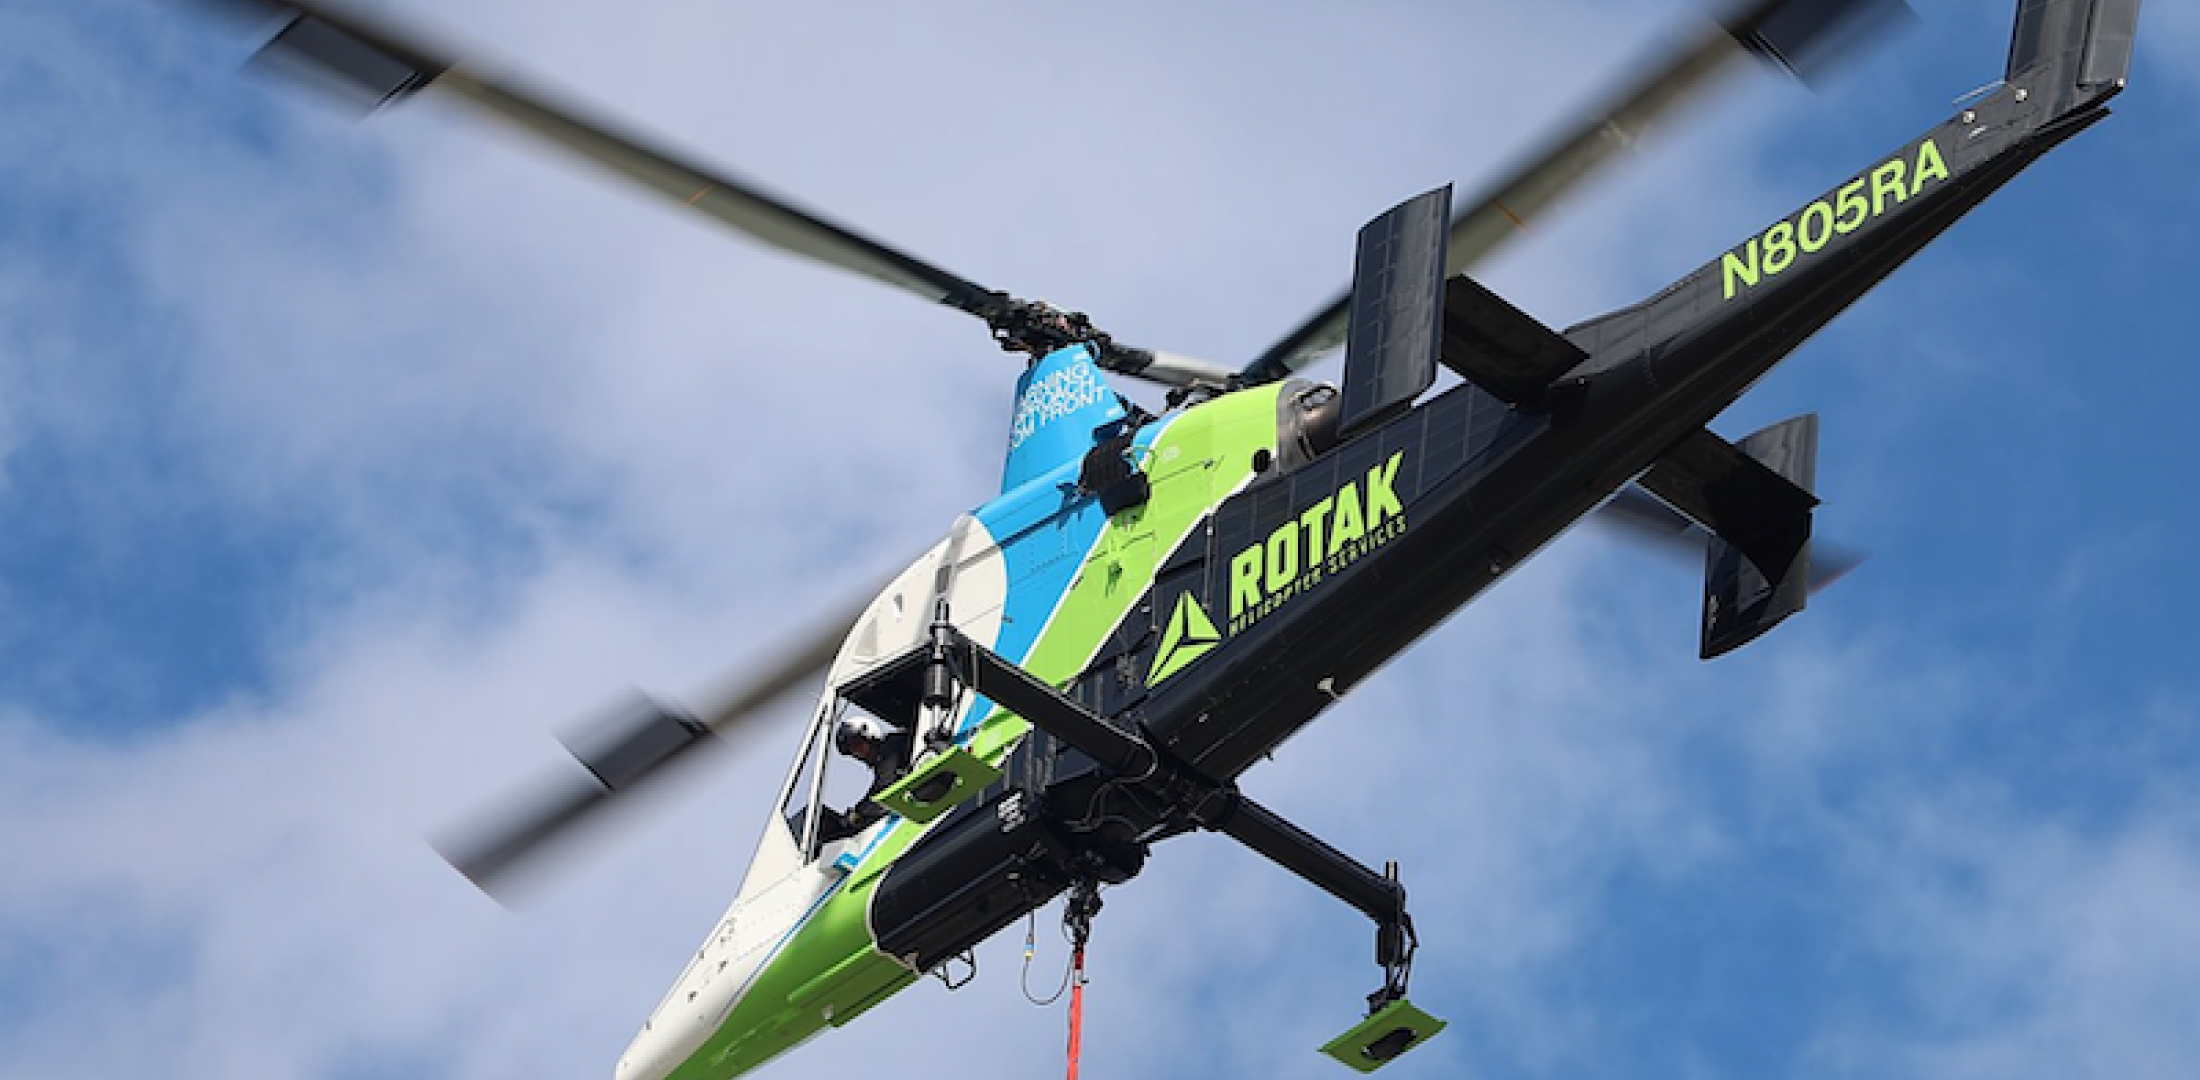 Rotak K-Max helicopter